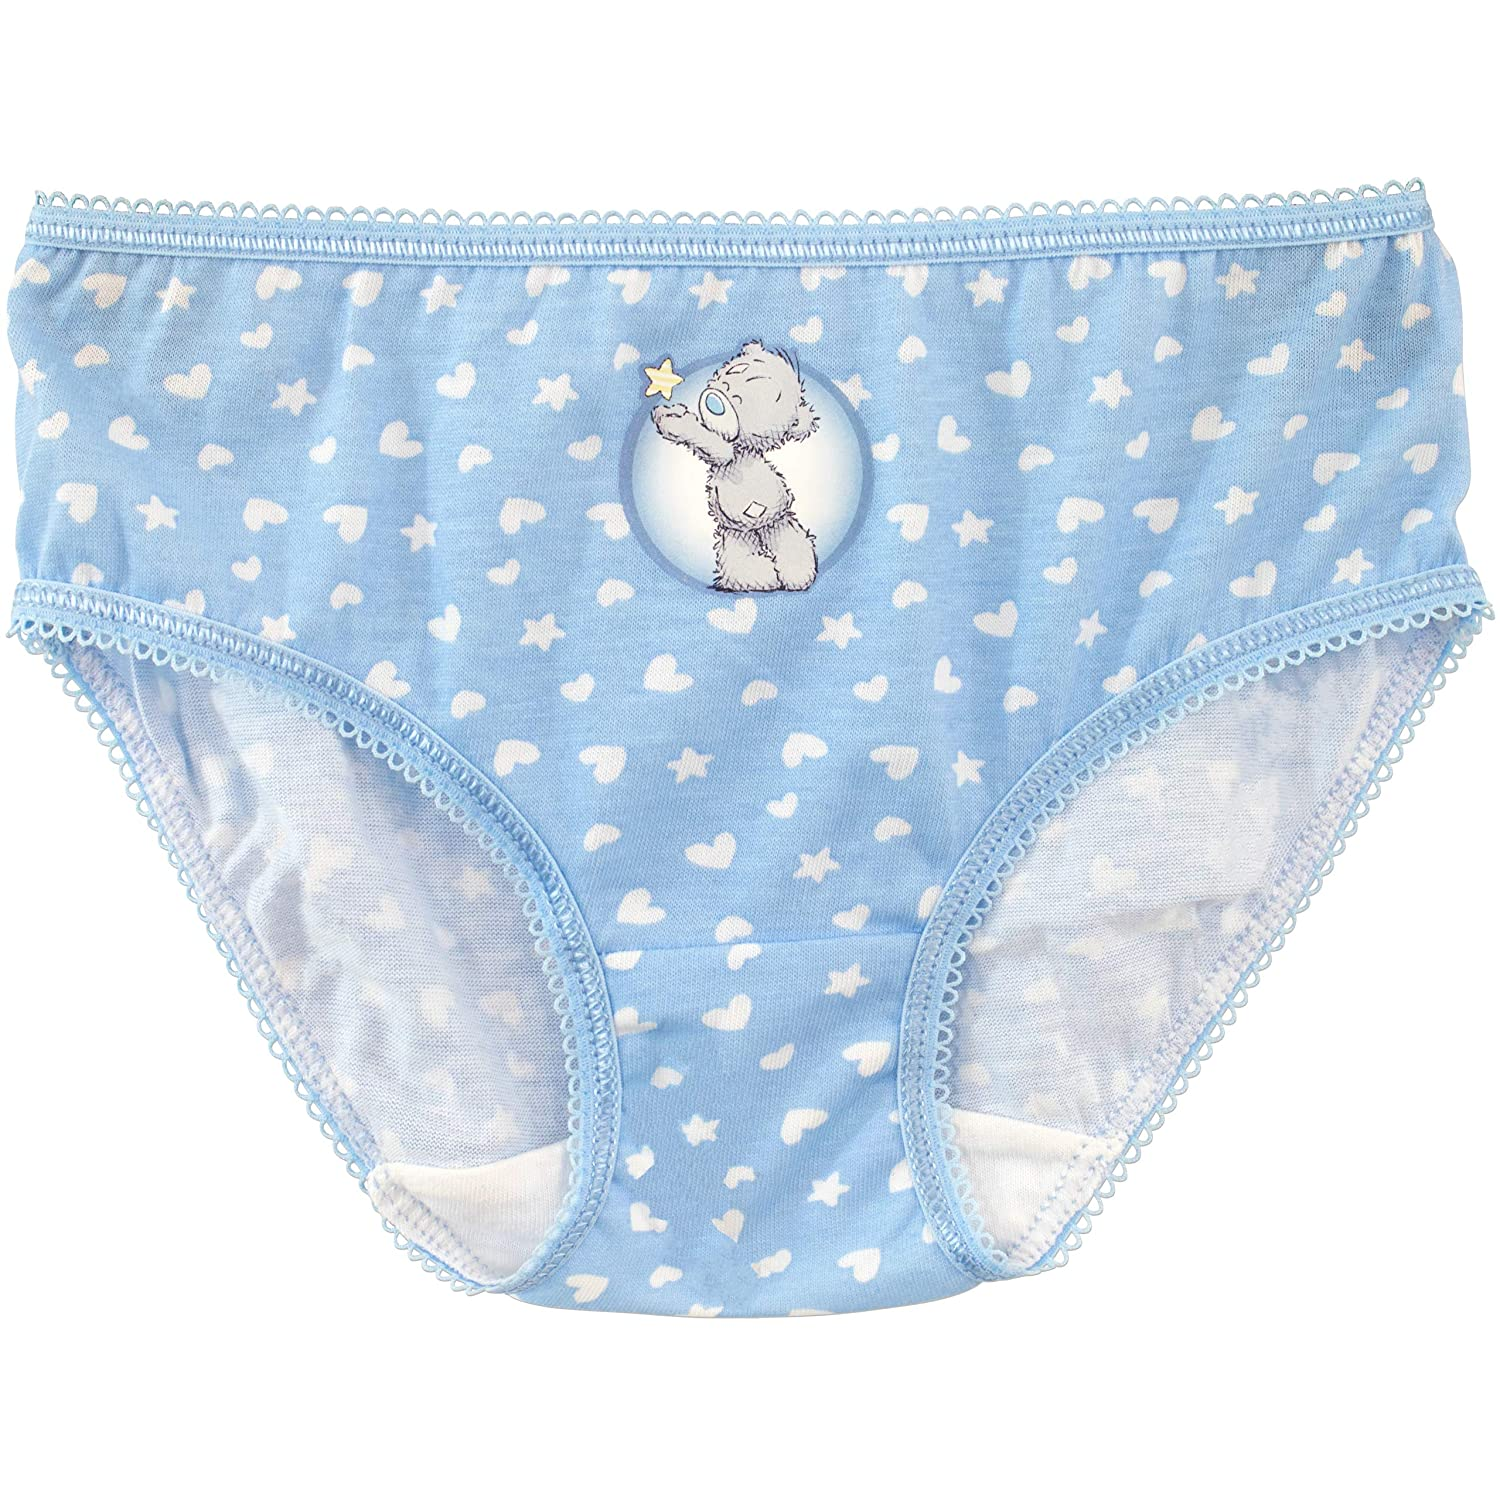 Tatty Teddy Girls Me to You Underwear Pack of 5